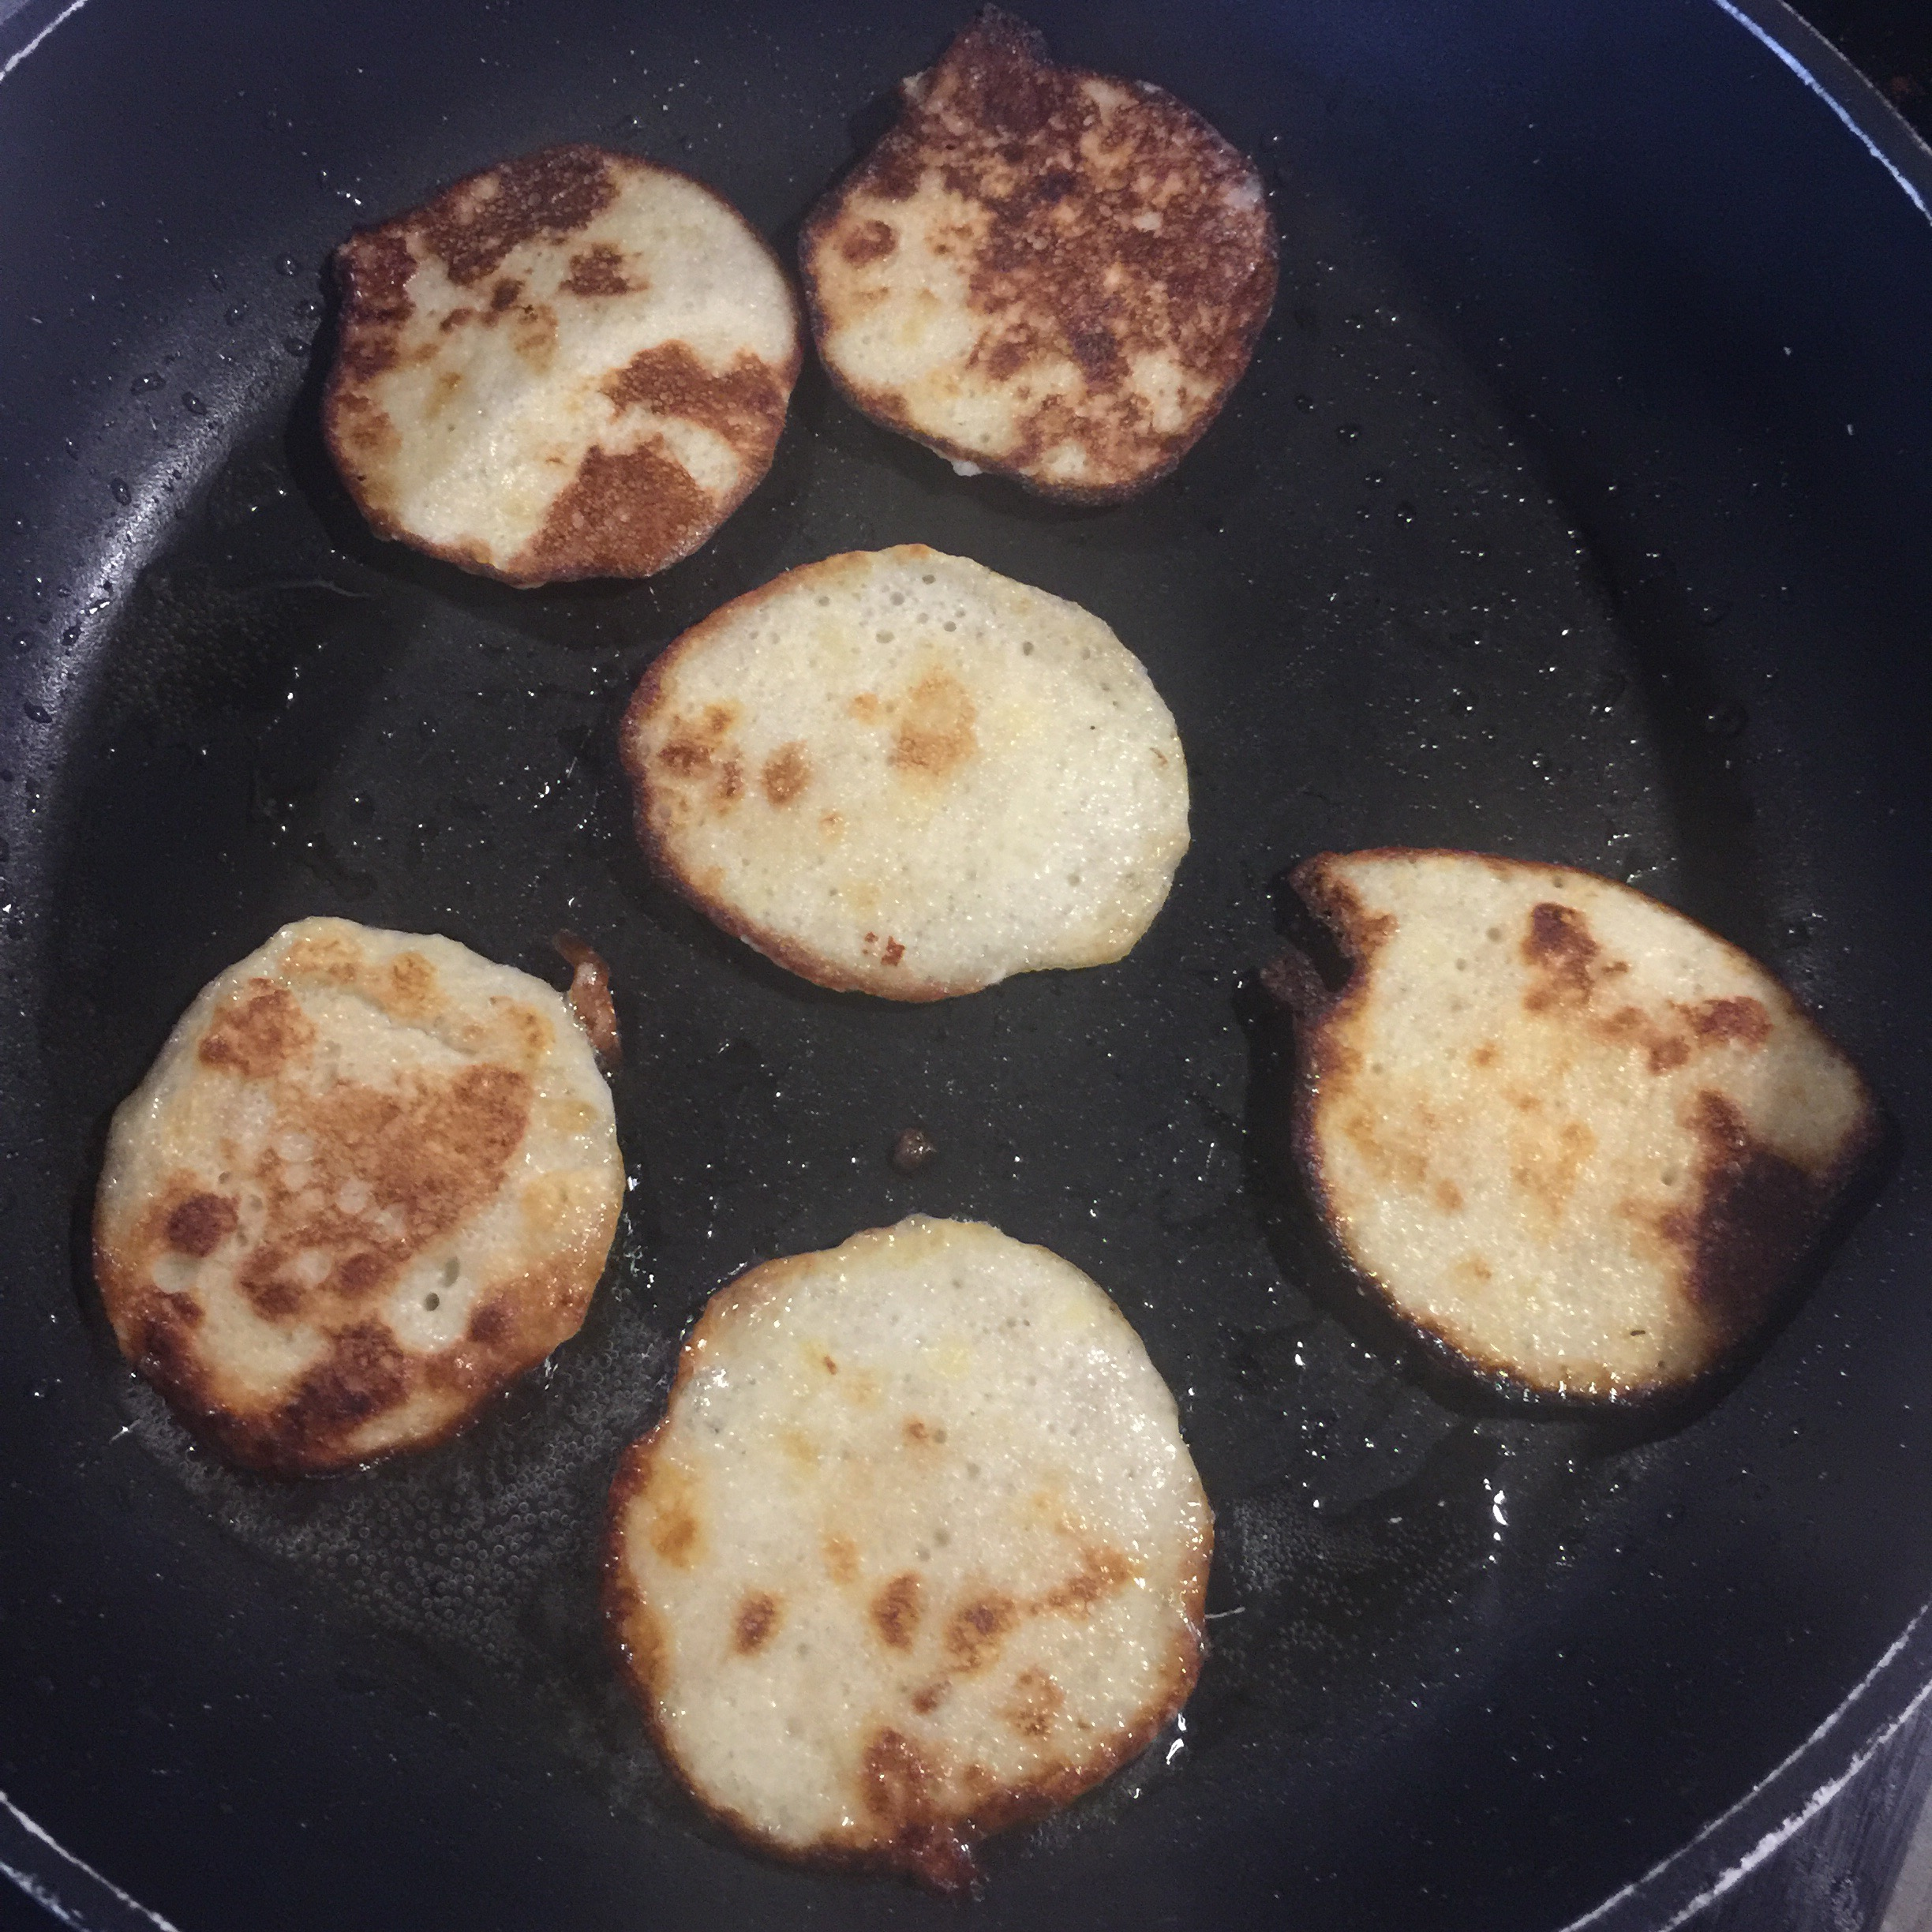 six baby led weaning banana pancakes in the frying pan after being flipped